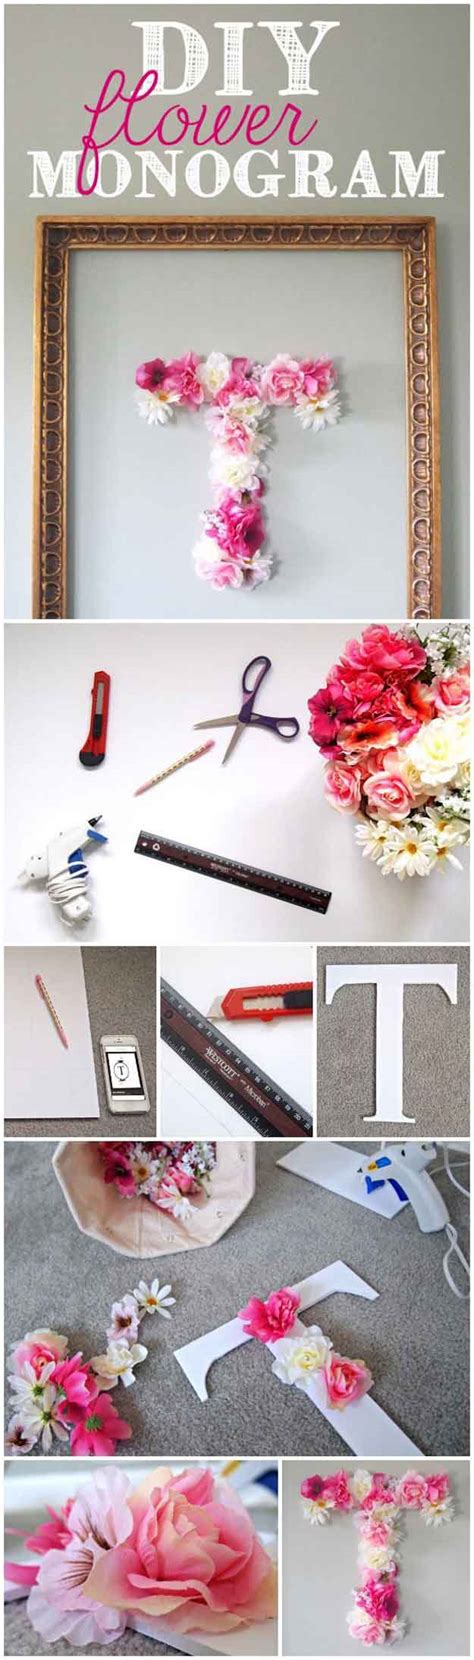 easy diy crafts for your room 37 insanely bedroom ideas for diy decor crafts for